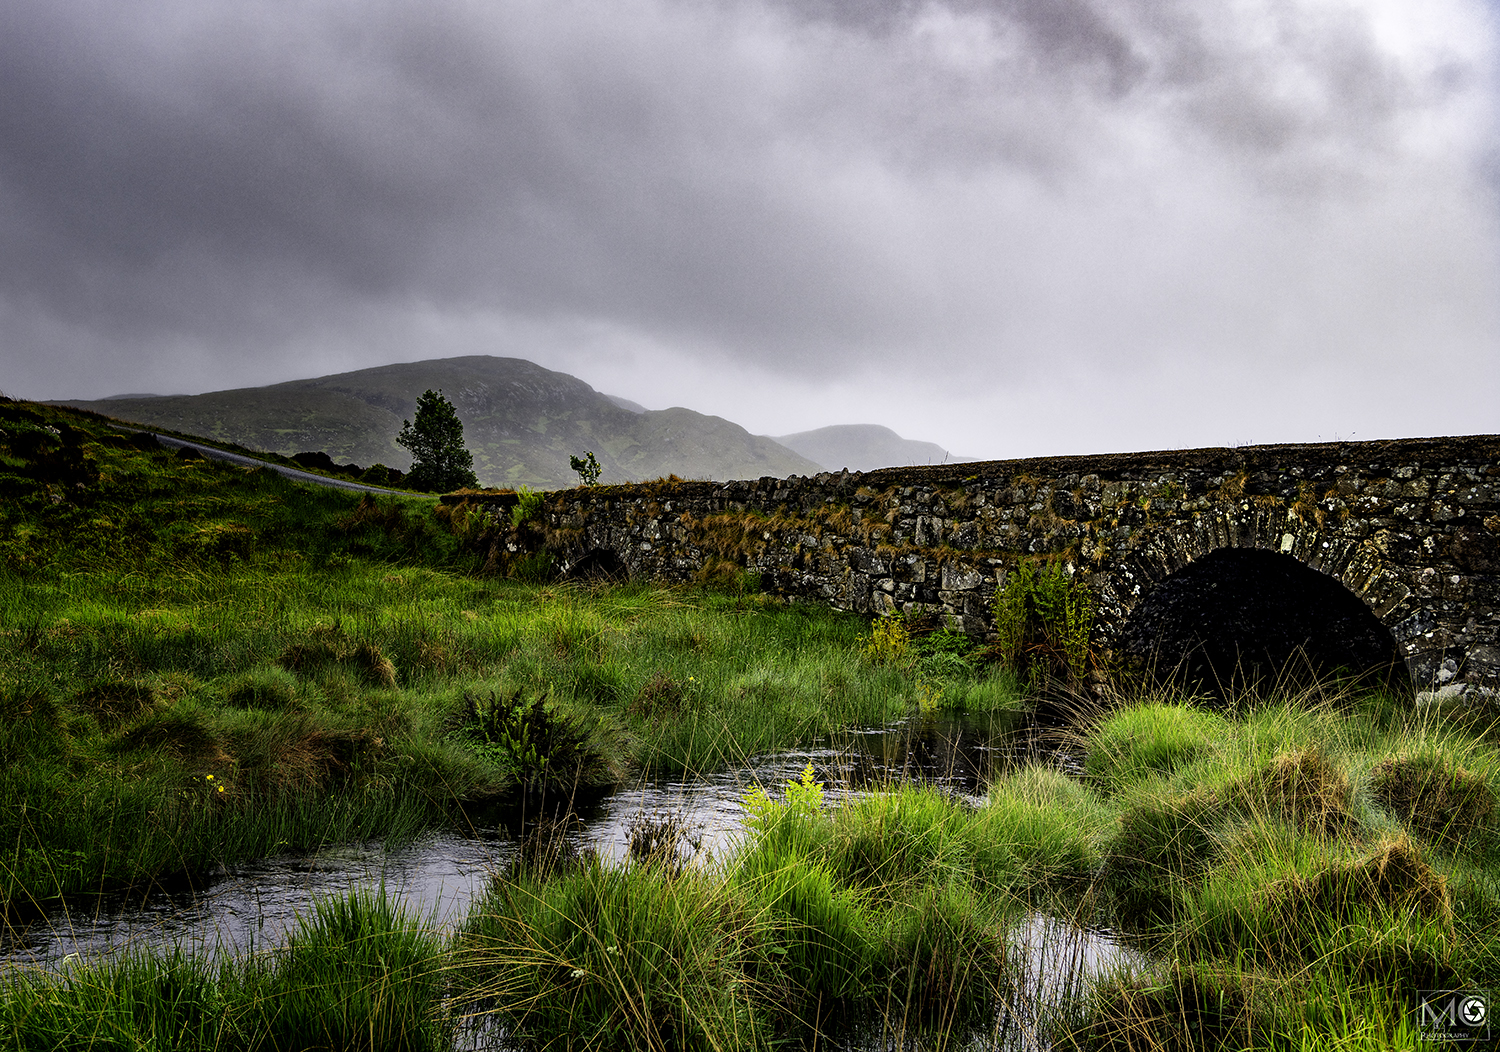 Stone bridge across a river near the Glenveagh National Park, Letterkenny, Co. Donegal, Ireland